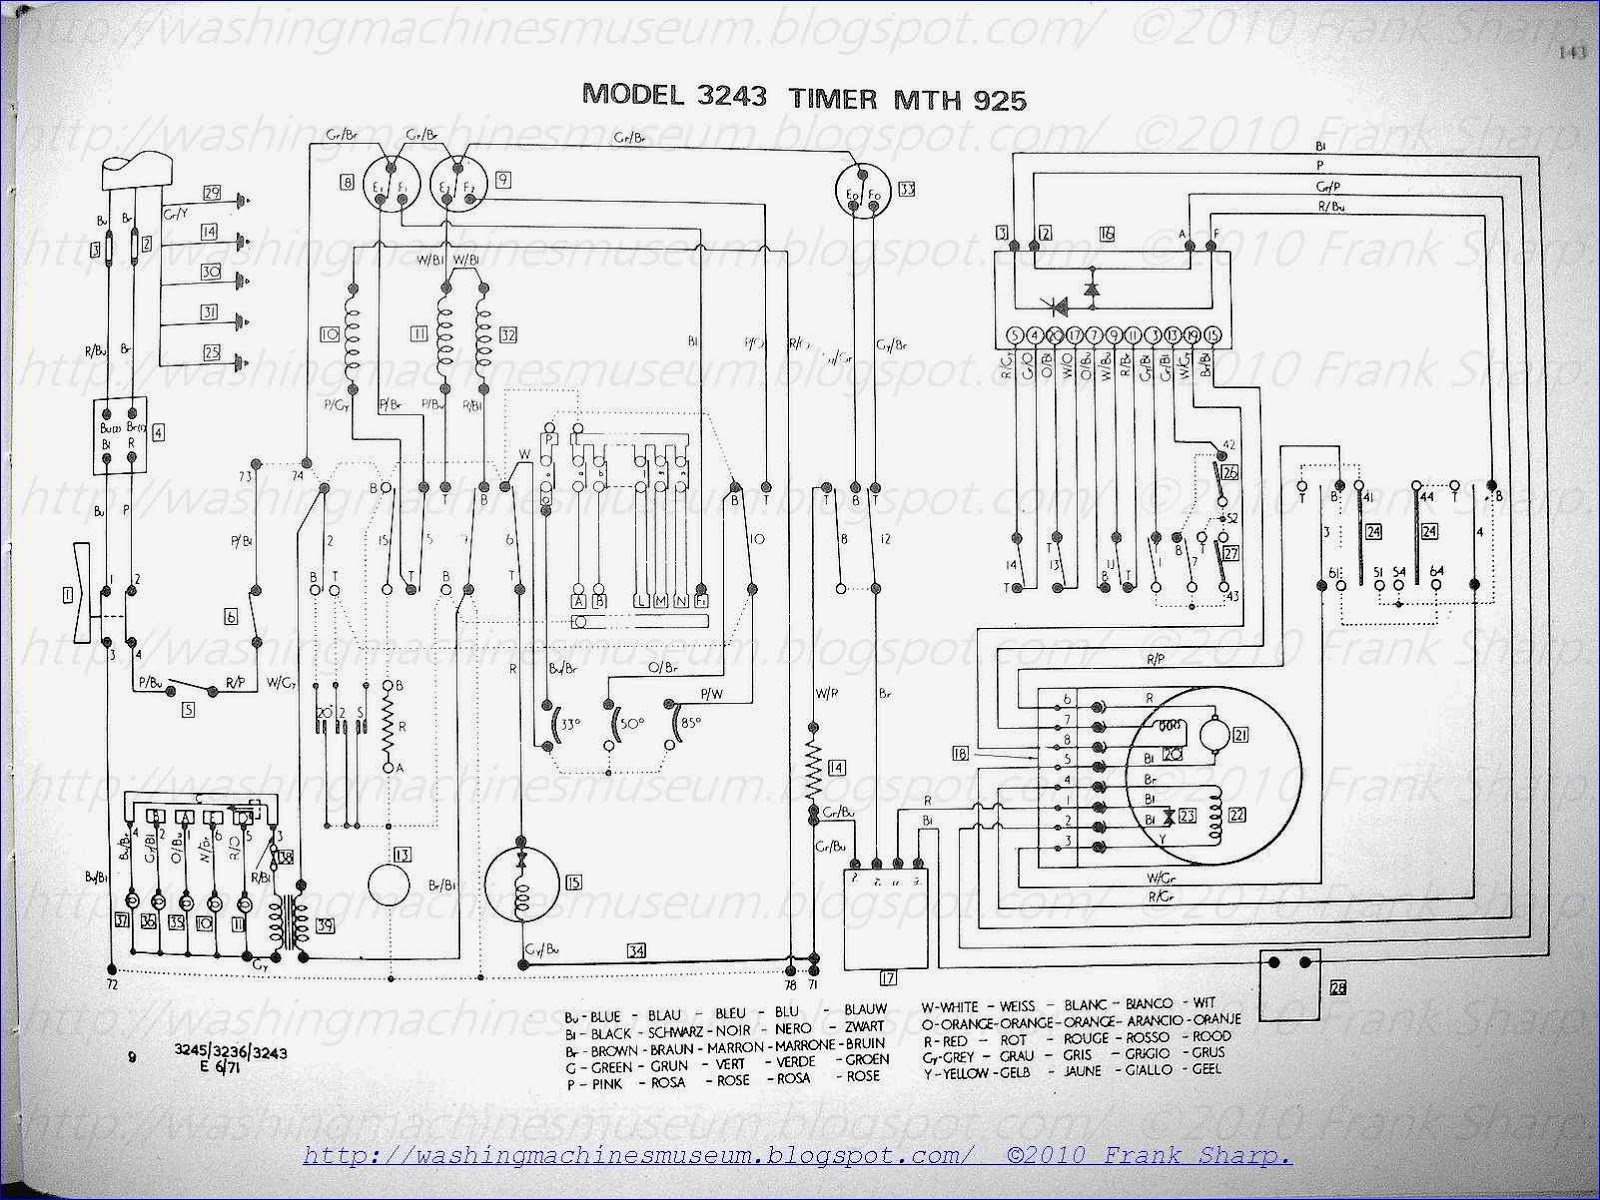 Aeg Washing Machine Wiring Diagram Libraries Hard Zsi Oven Along With Bosch Microwave Ovens Phase Motor Diagramwiring Diagrams